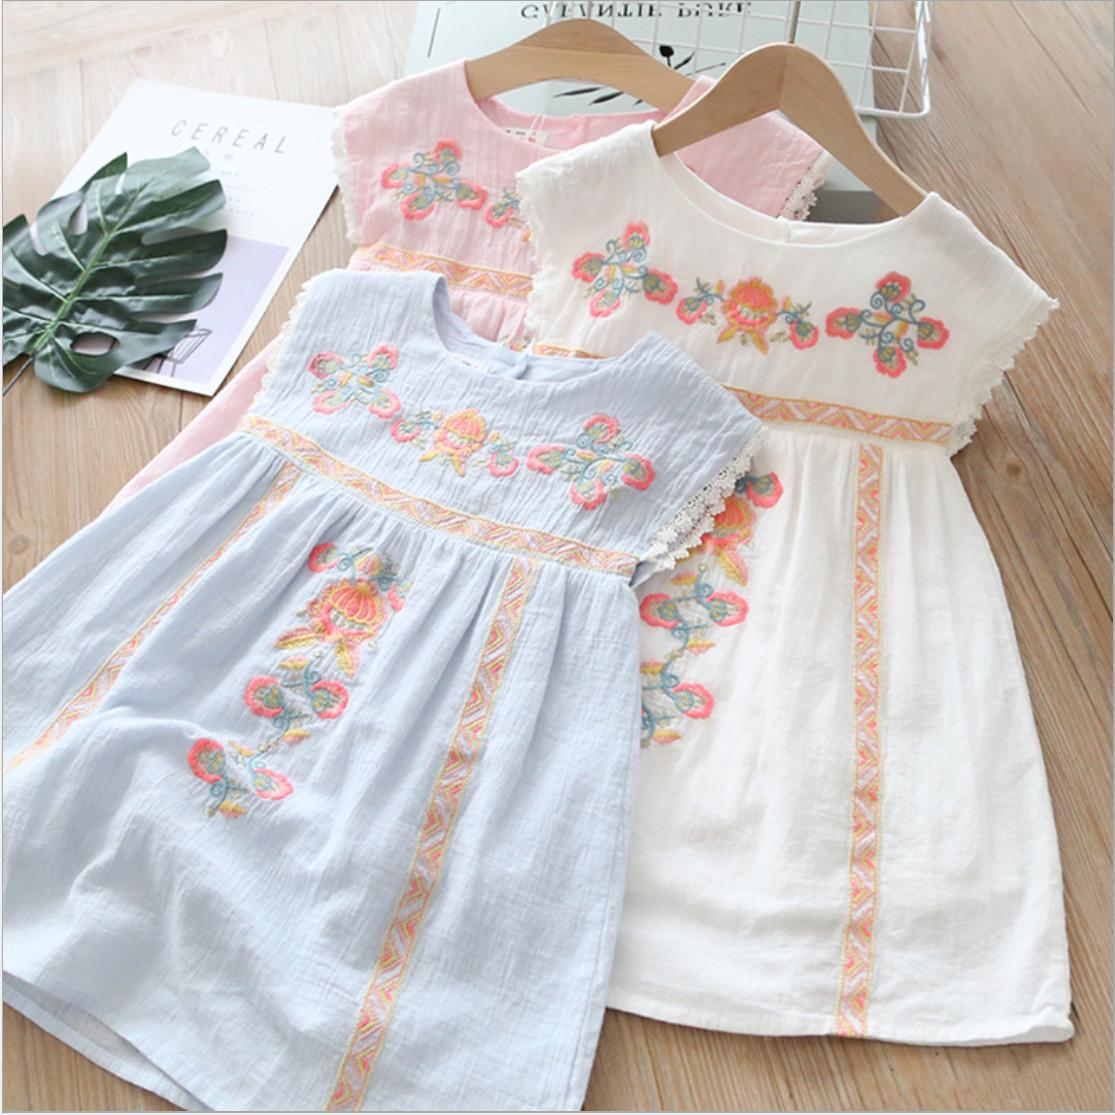 147d5702a5ffd 2019 new kids summer dress girls colorful flowers embroidery lace dress  children lace princess dress kid Tops clothes C5094